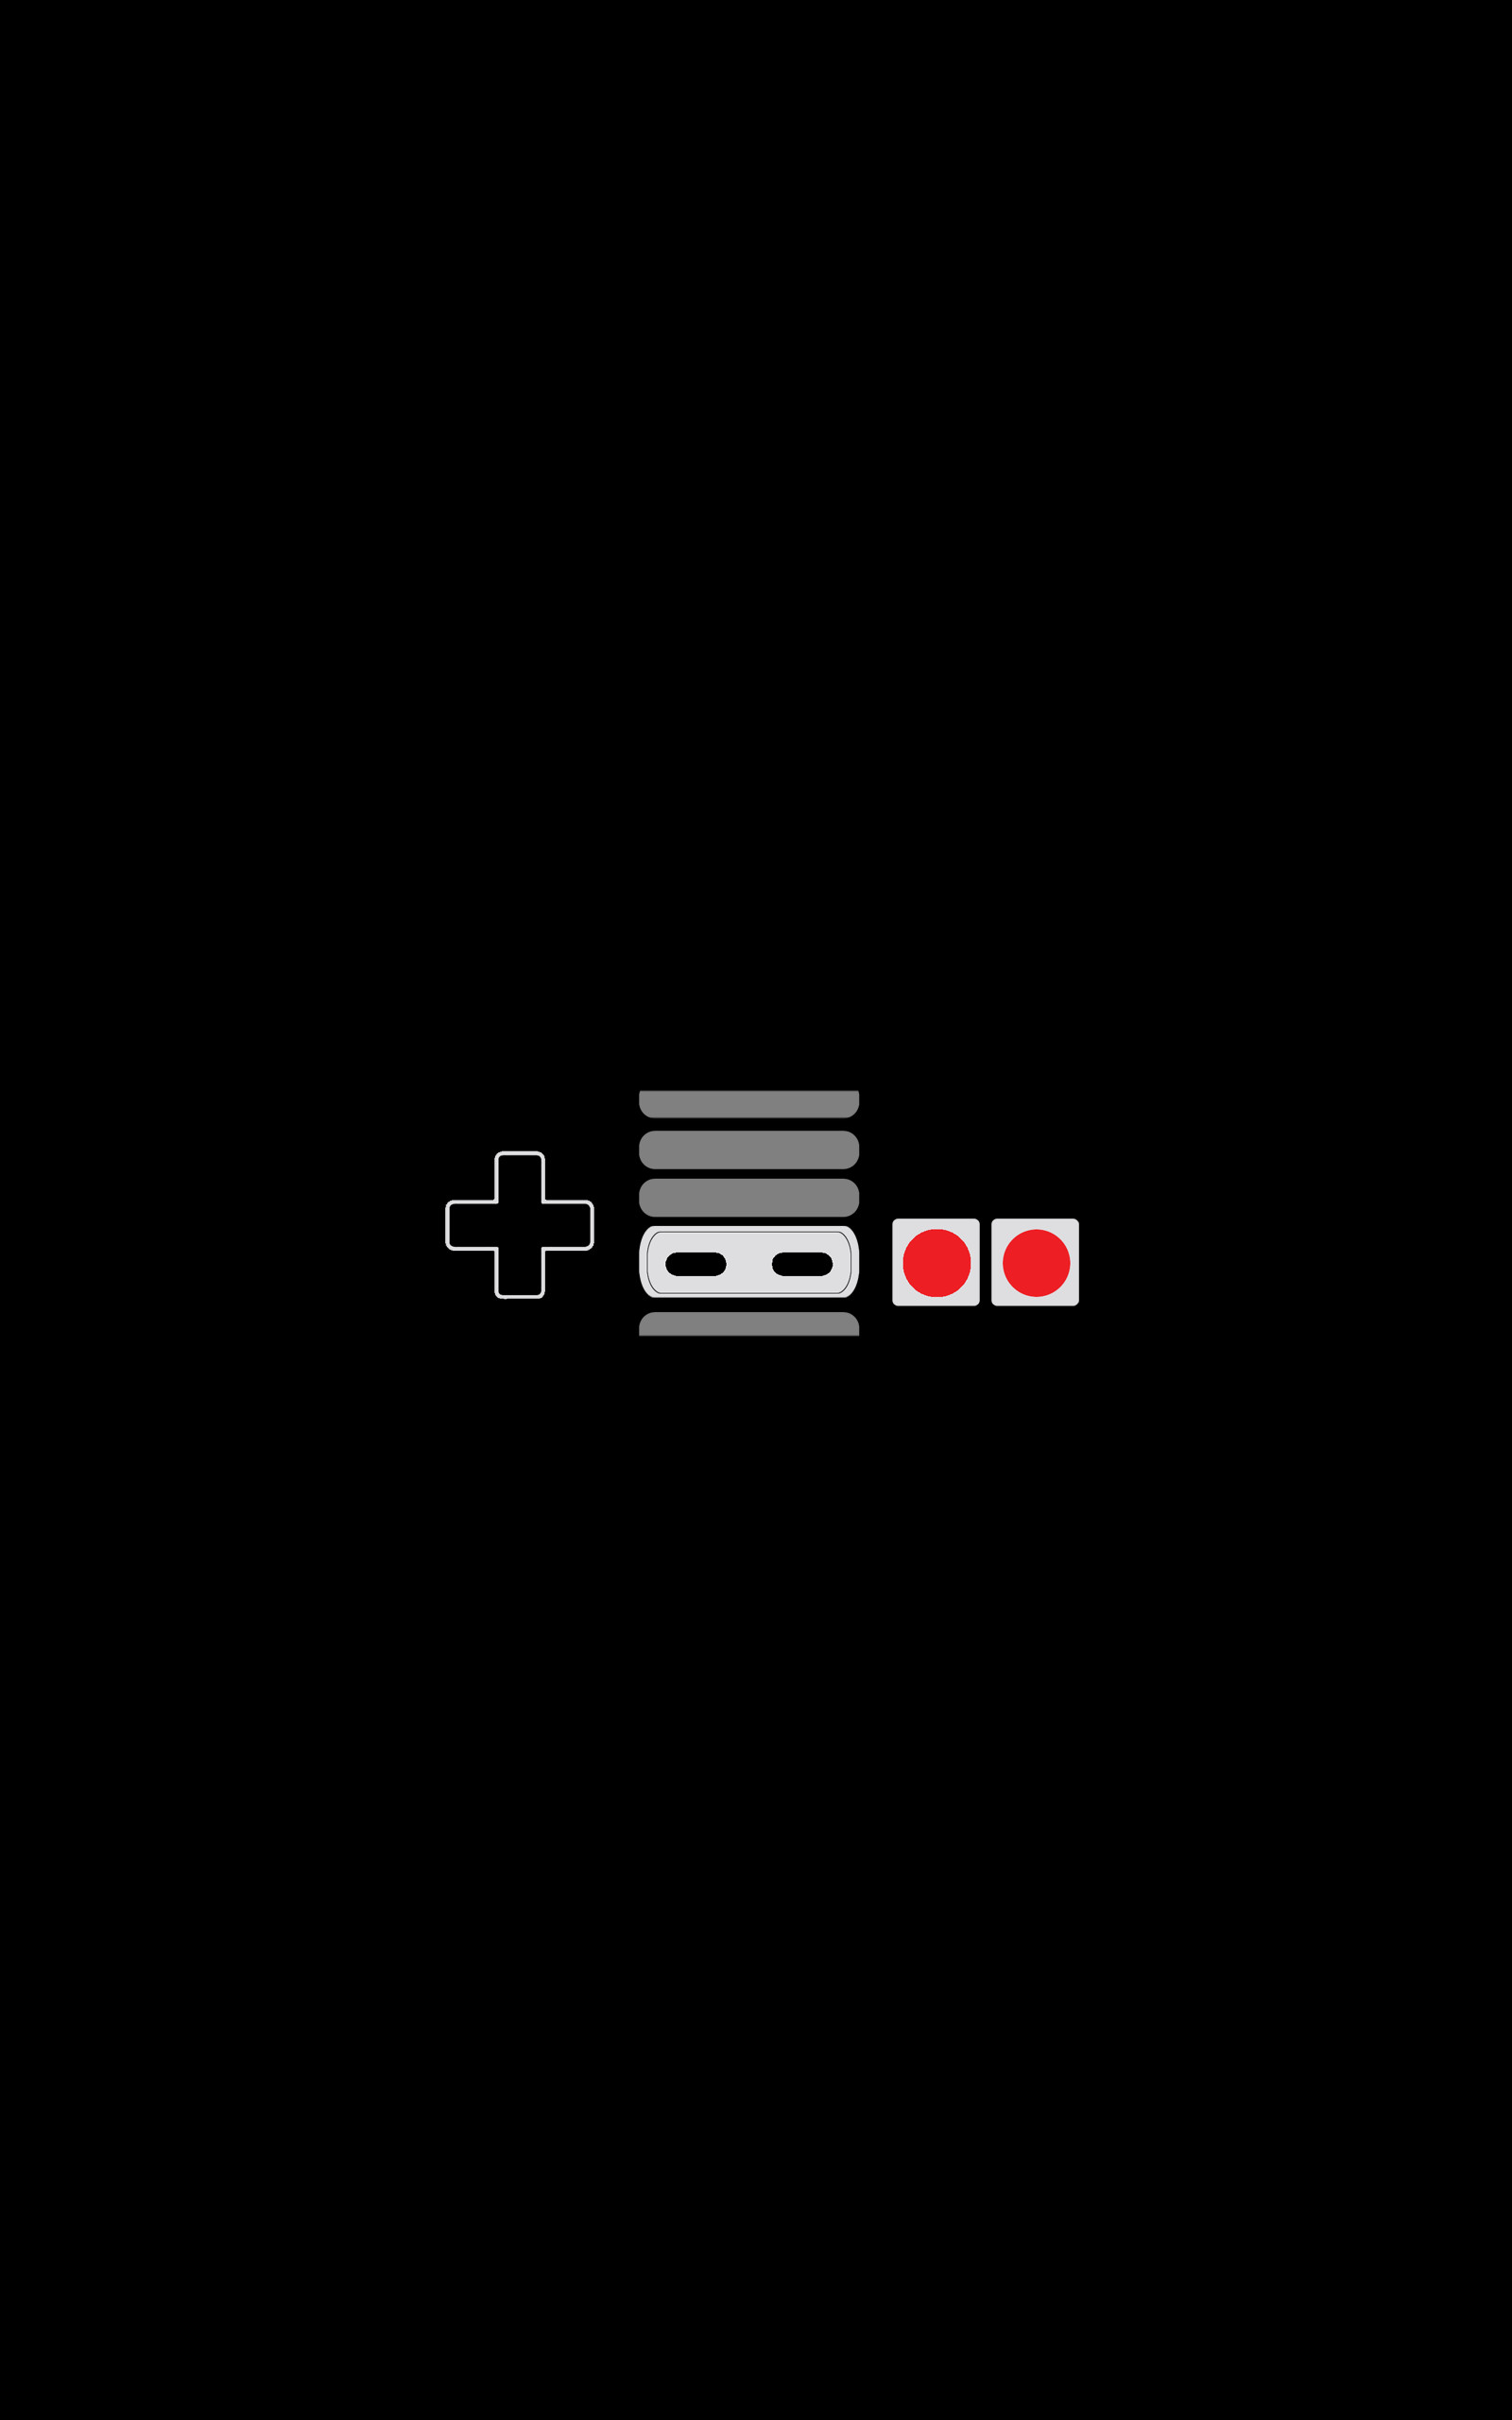 Minimalist Video Game Wallpaper 82 Images